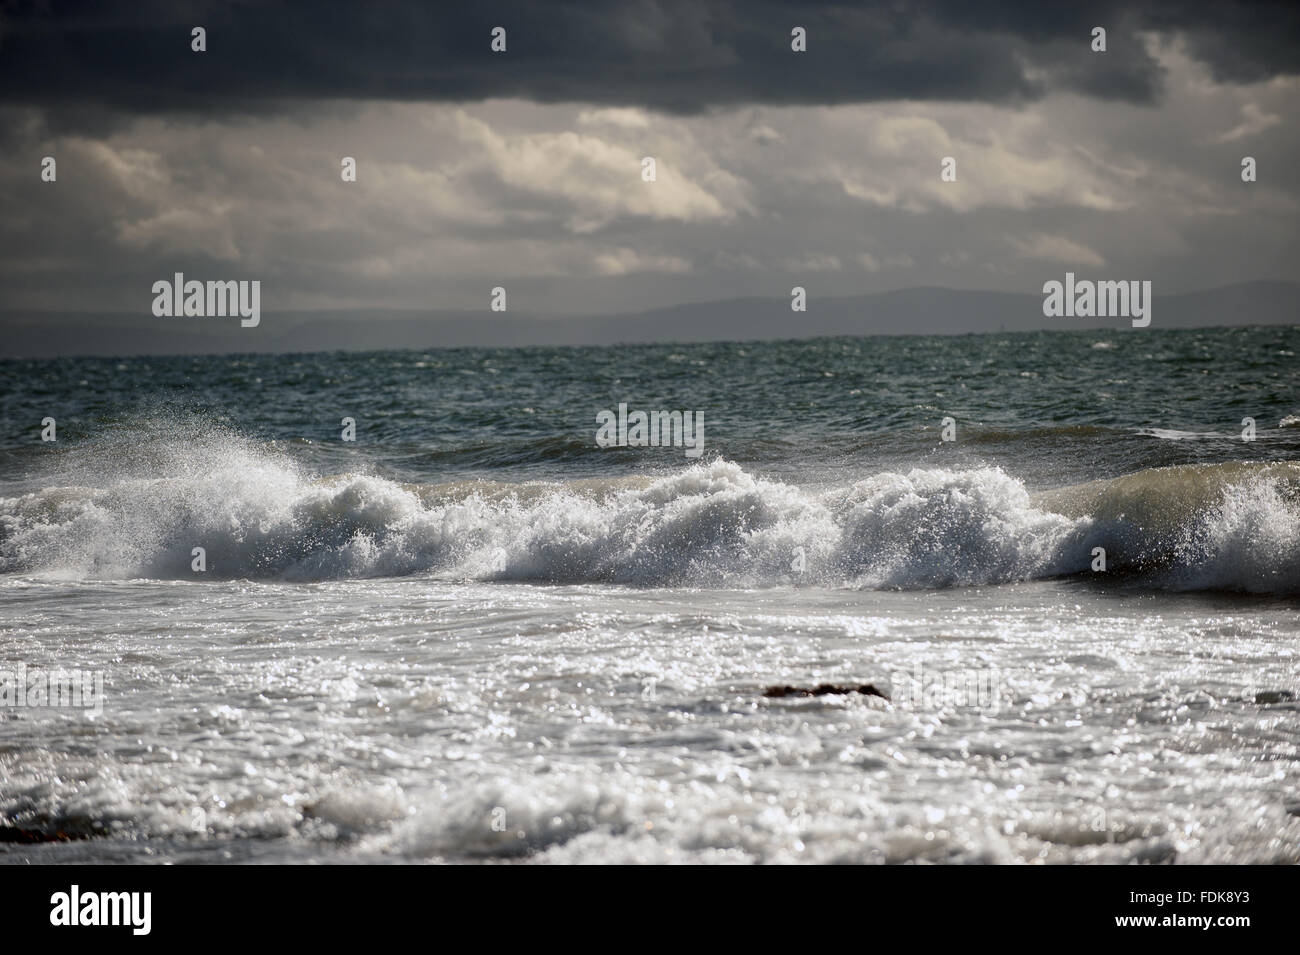 Waves and dark clouds off Pennard, Gower, Wales. - Stock Image